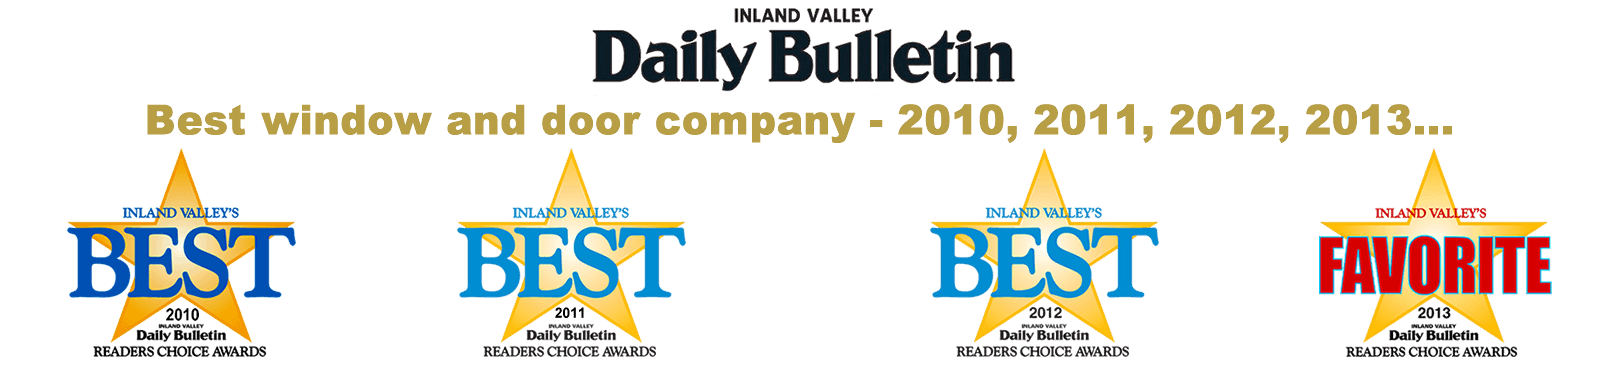 inland_empire_daily_bulletin_readers_choice